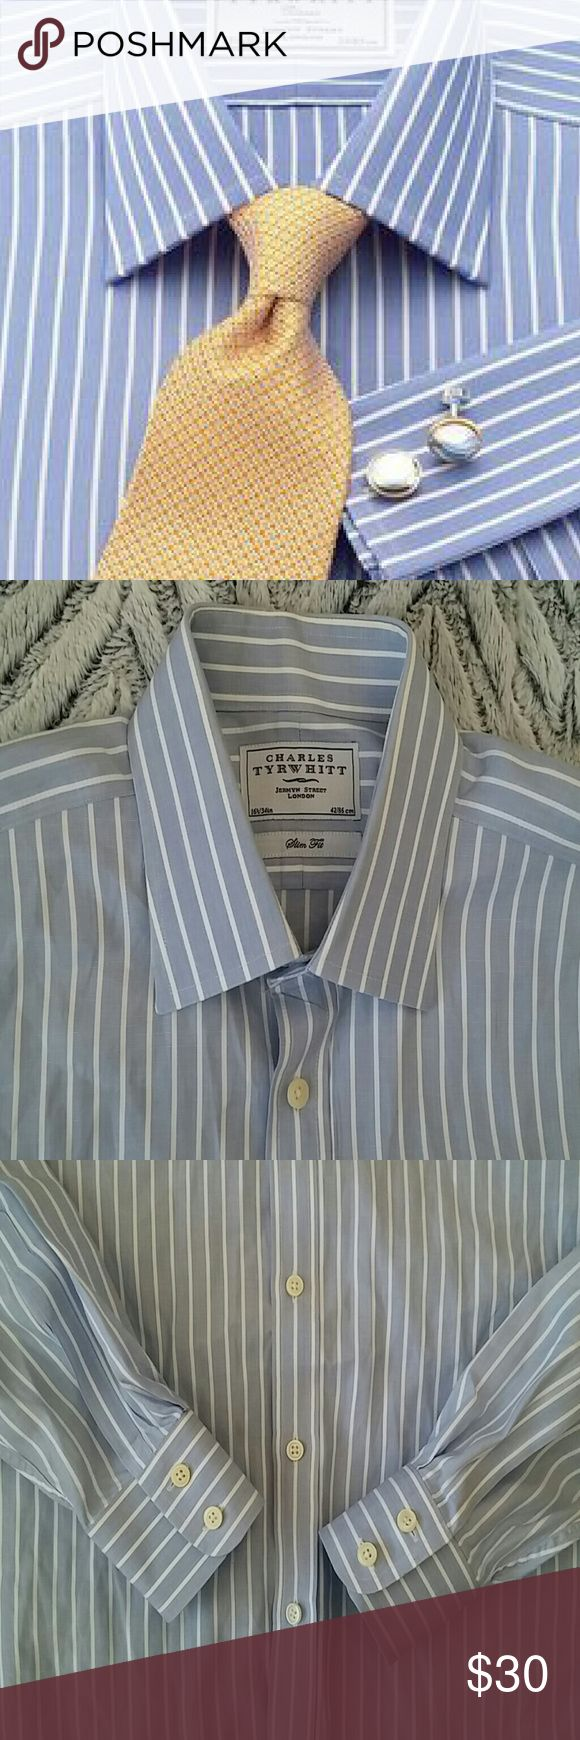 Charles Tyrwhitt Slim Fit Mens Button Down This is a luxury mens button down. Extra starched collar and cuffs. Medium blue and white pinstripe. Off white buttons. Charles Tyrwhitt, Jermyn Street London. 16.5/34in and 42/86cm. 100% cotton. Machine washable. Great used condition. Tiny pen mark on the very lower front. Barely visible. Would be tucked into a shirt anyways. Also, my camera makes it look gray. It is blue and white, like the first picture. Charles Tyrwhitt Shirts Dress Shirts